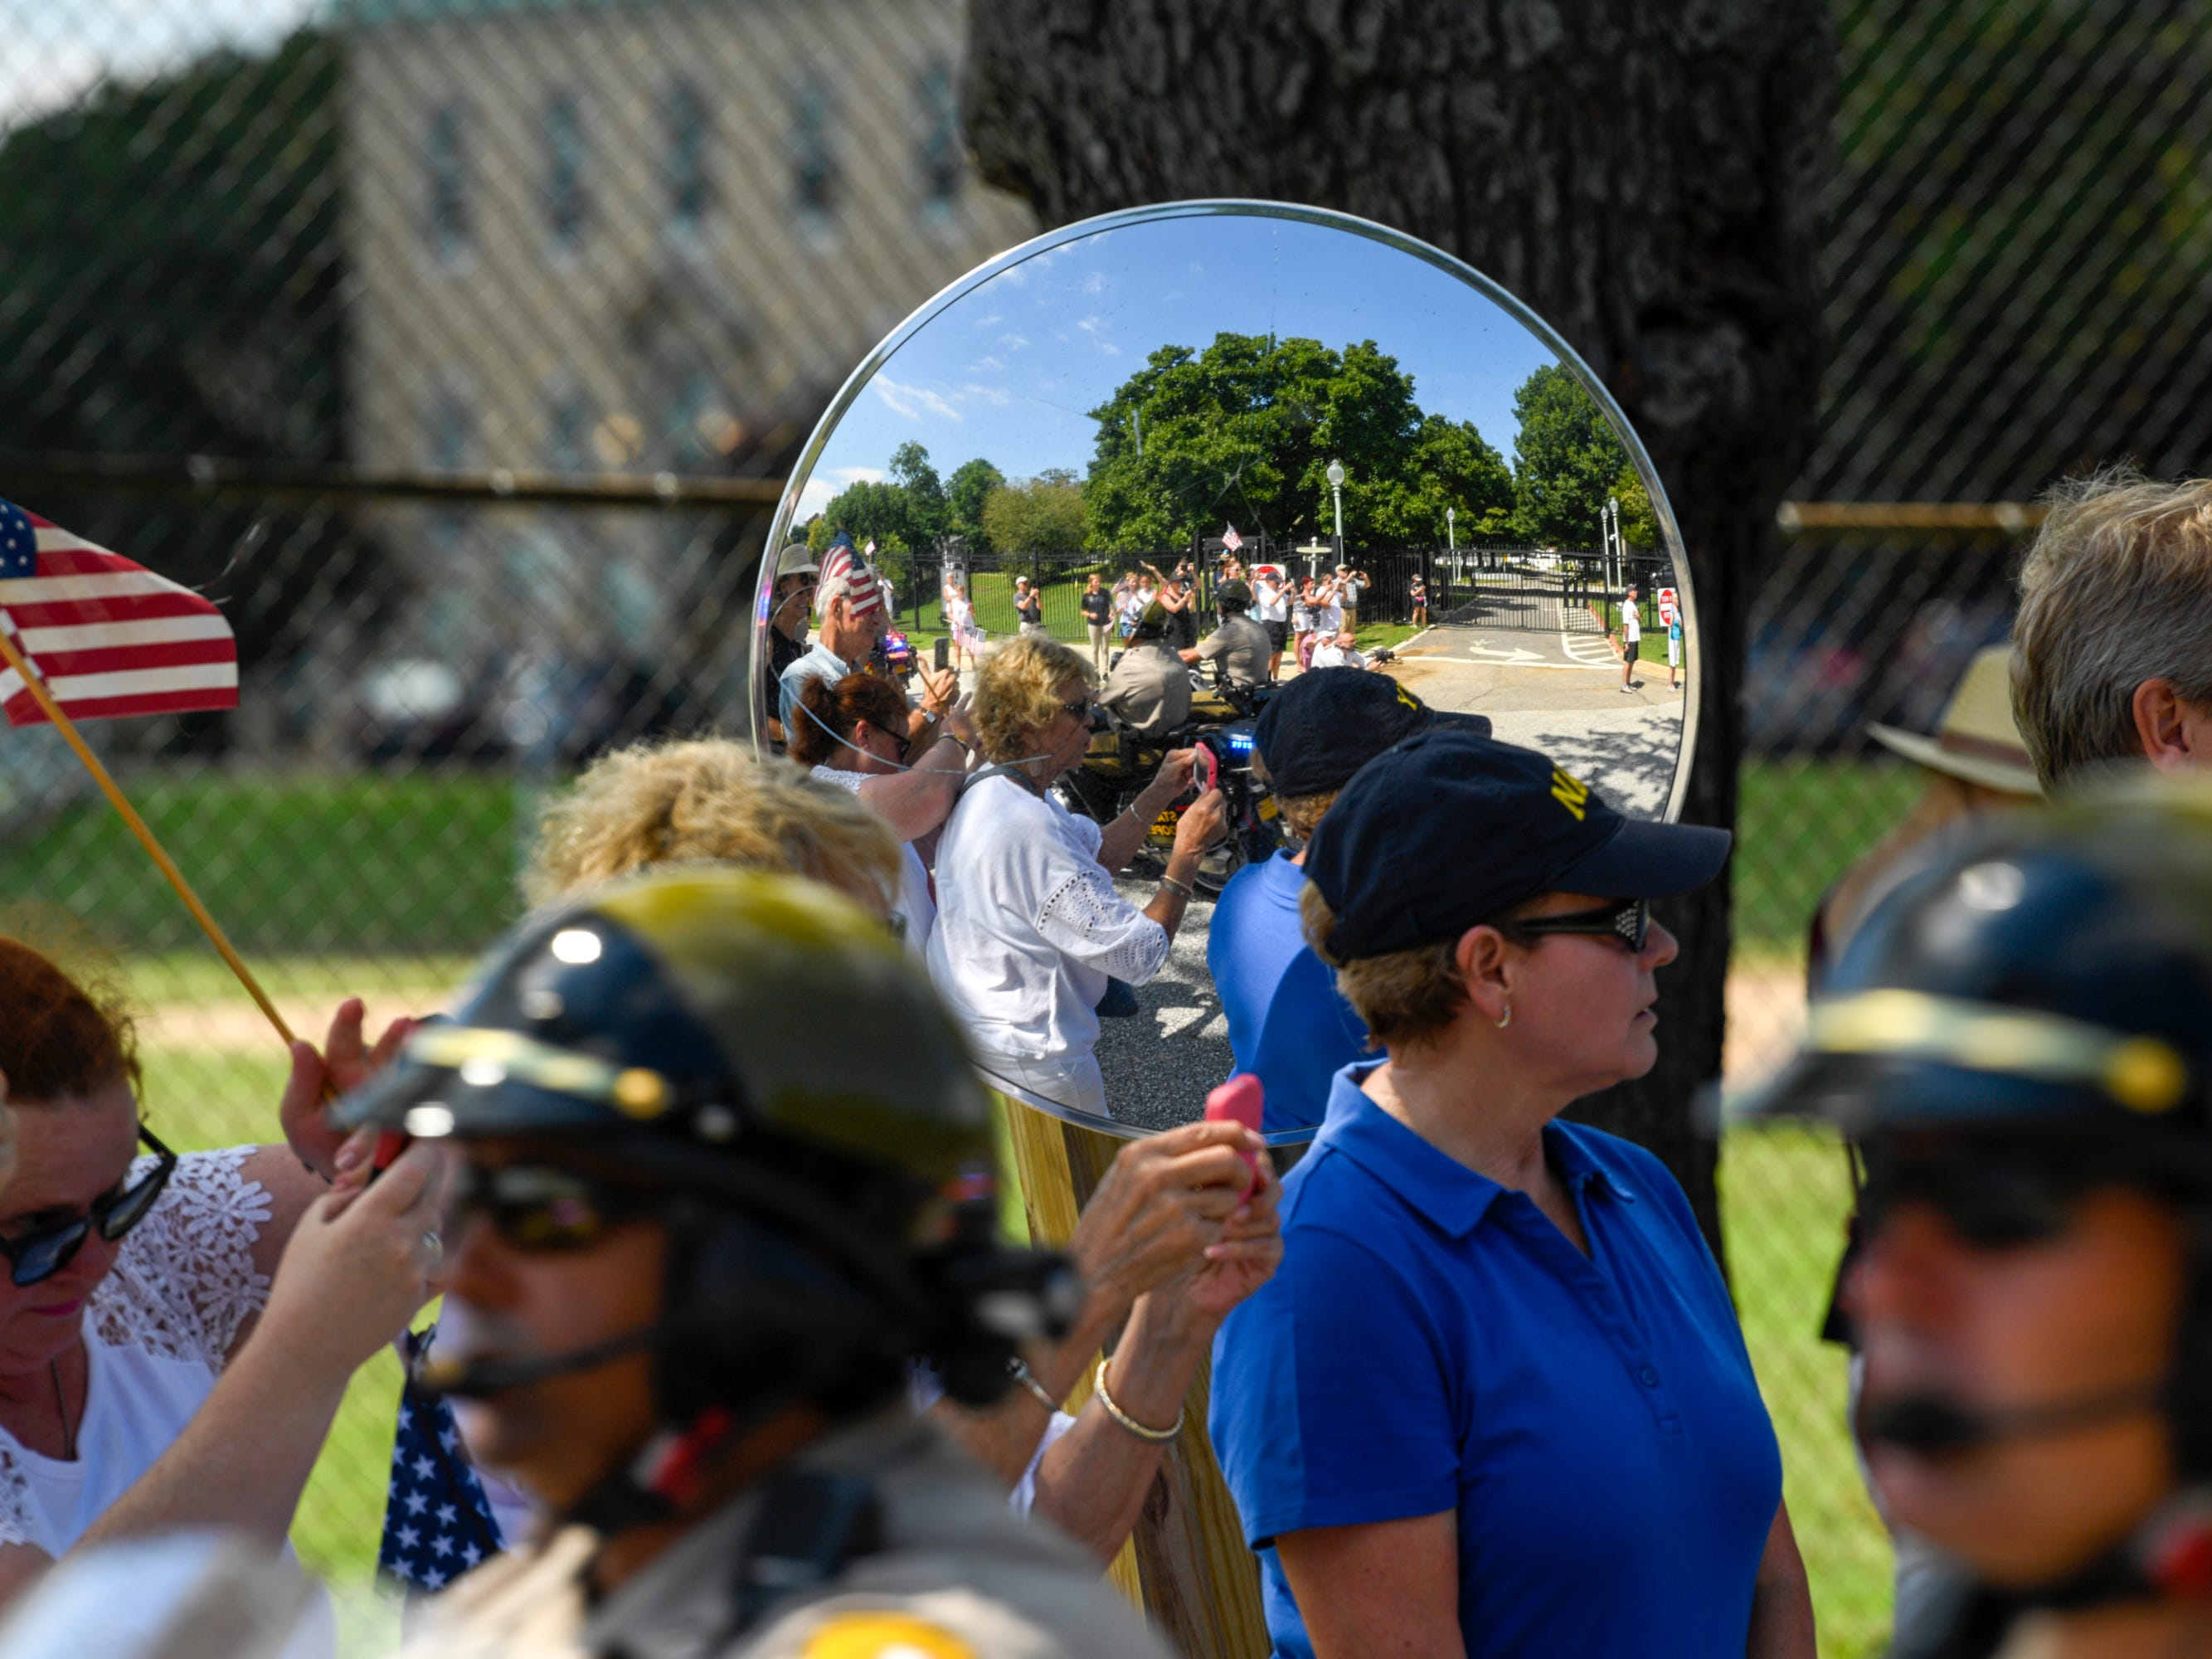 People watch the passing of John McCain's motorcade on his way to be laid to rest at the U.S. Naval Academy in Annapolis, Maryland.